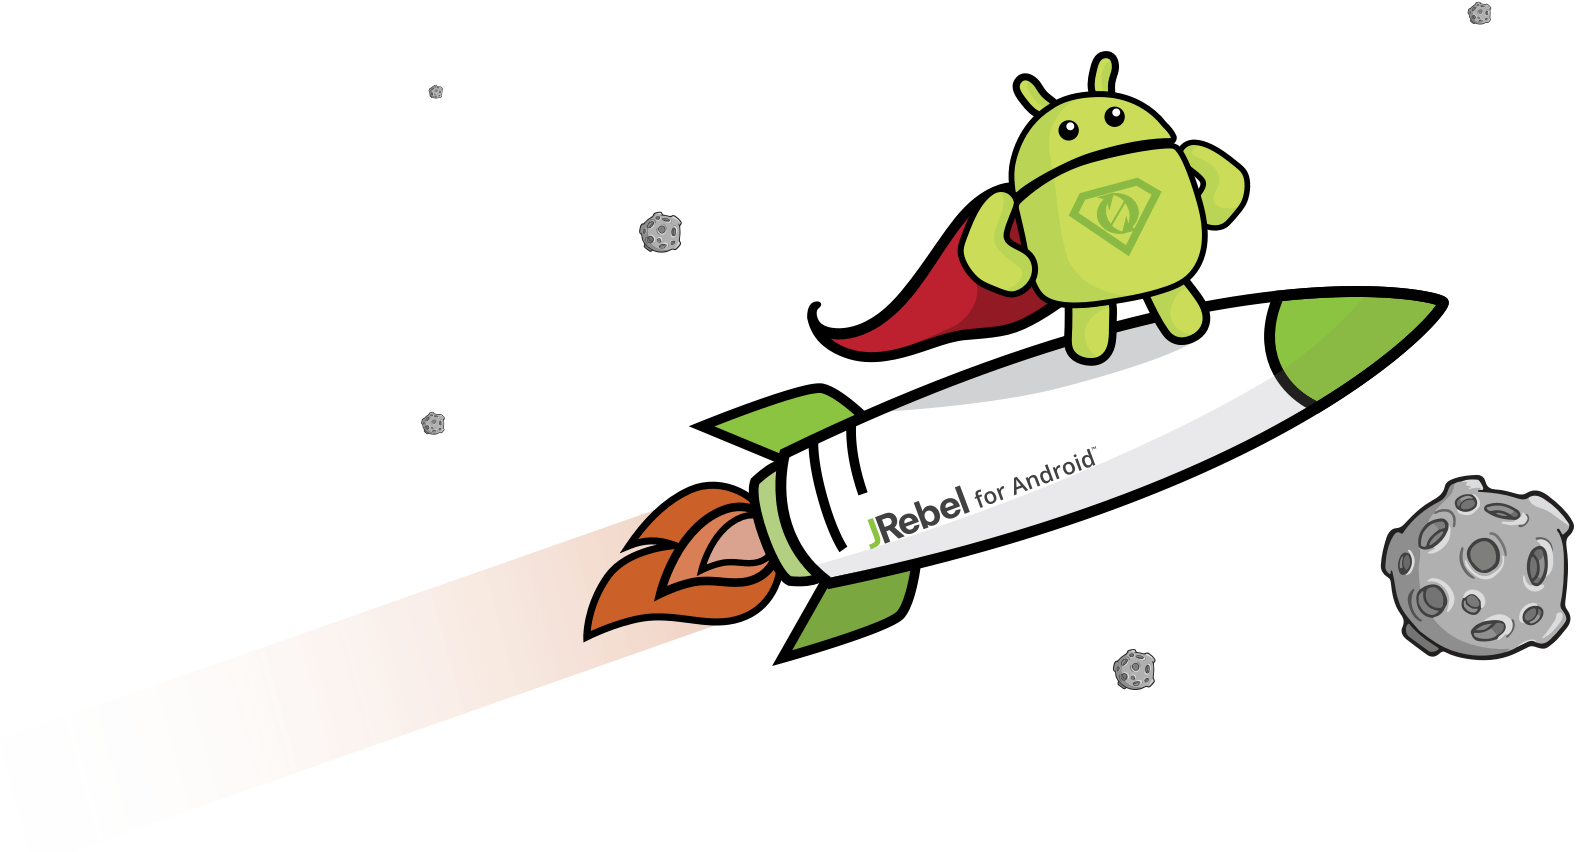 5 Best Tools for Young Android Developers - jRebel for Android